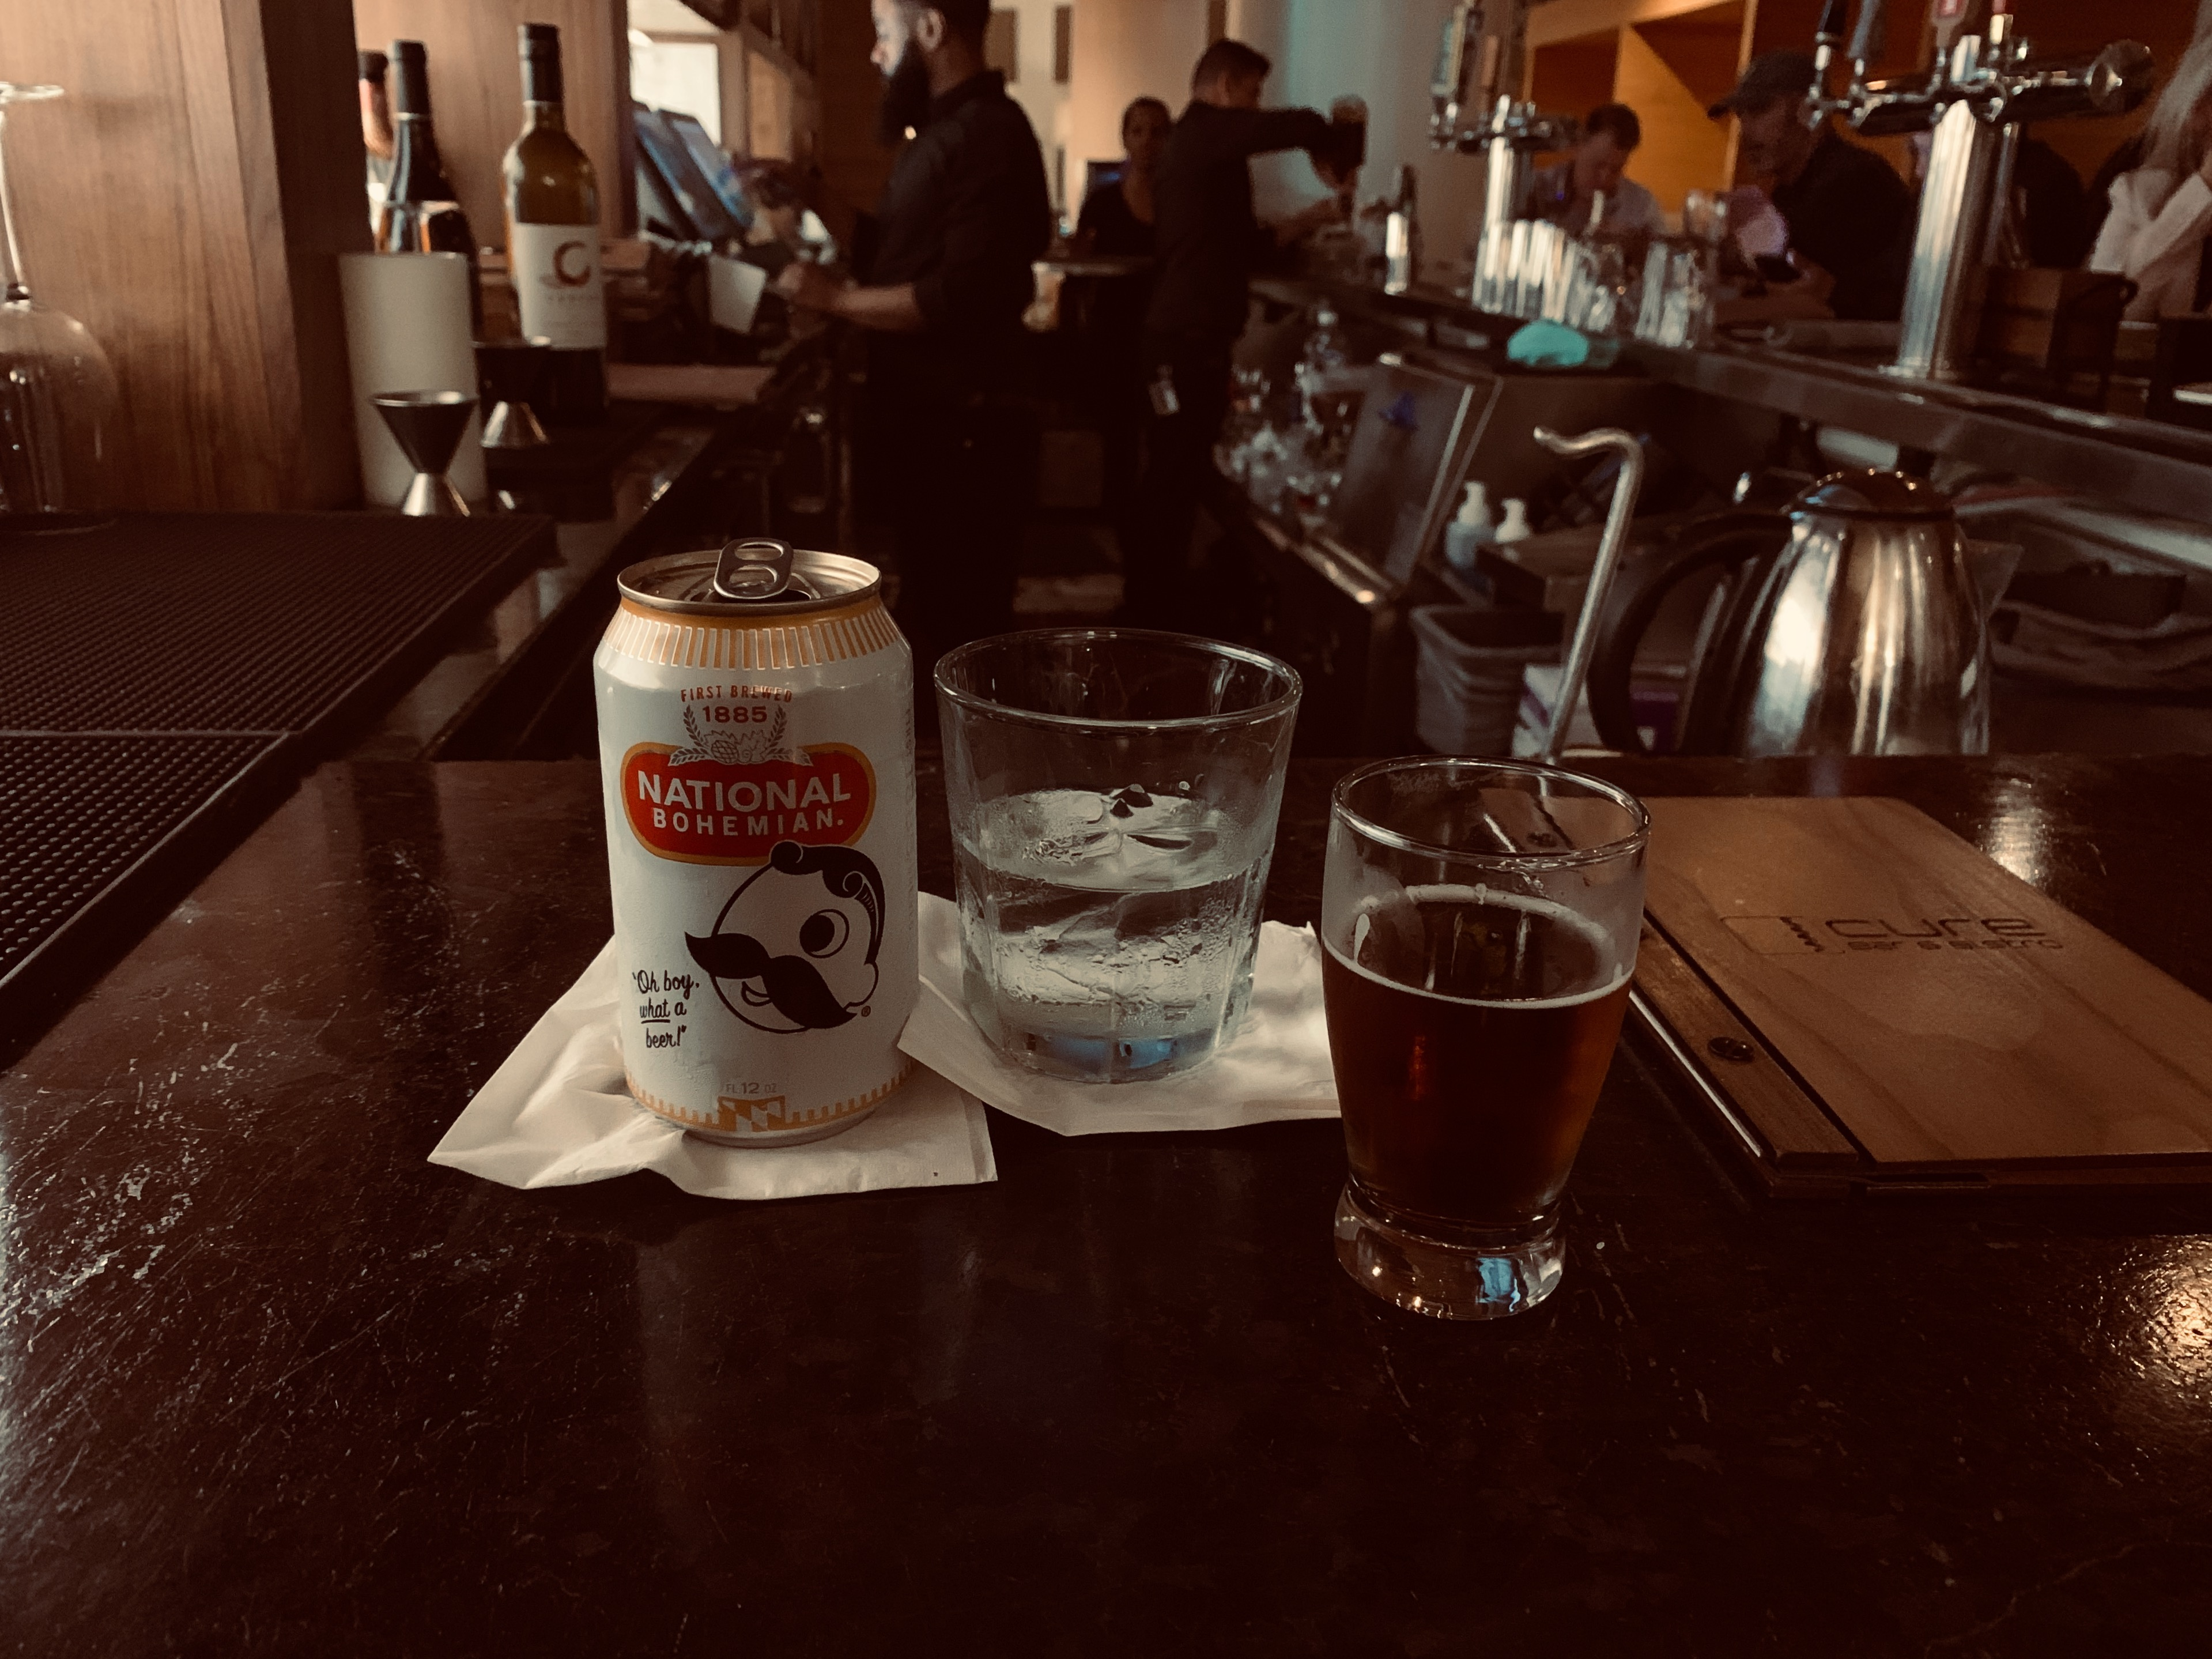 The Satellite Show ended early Wednesday afternoon instead of late Thursday morning, as scheduled. We found the abrupt schedule change gave us time to review our notes. And so on. Cheers!